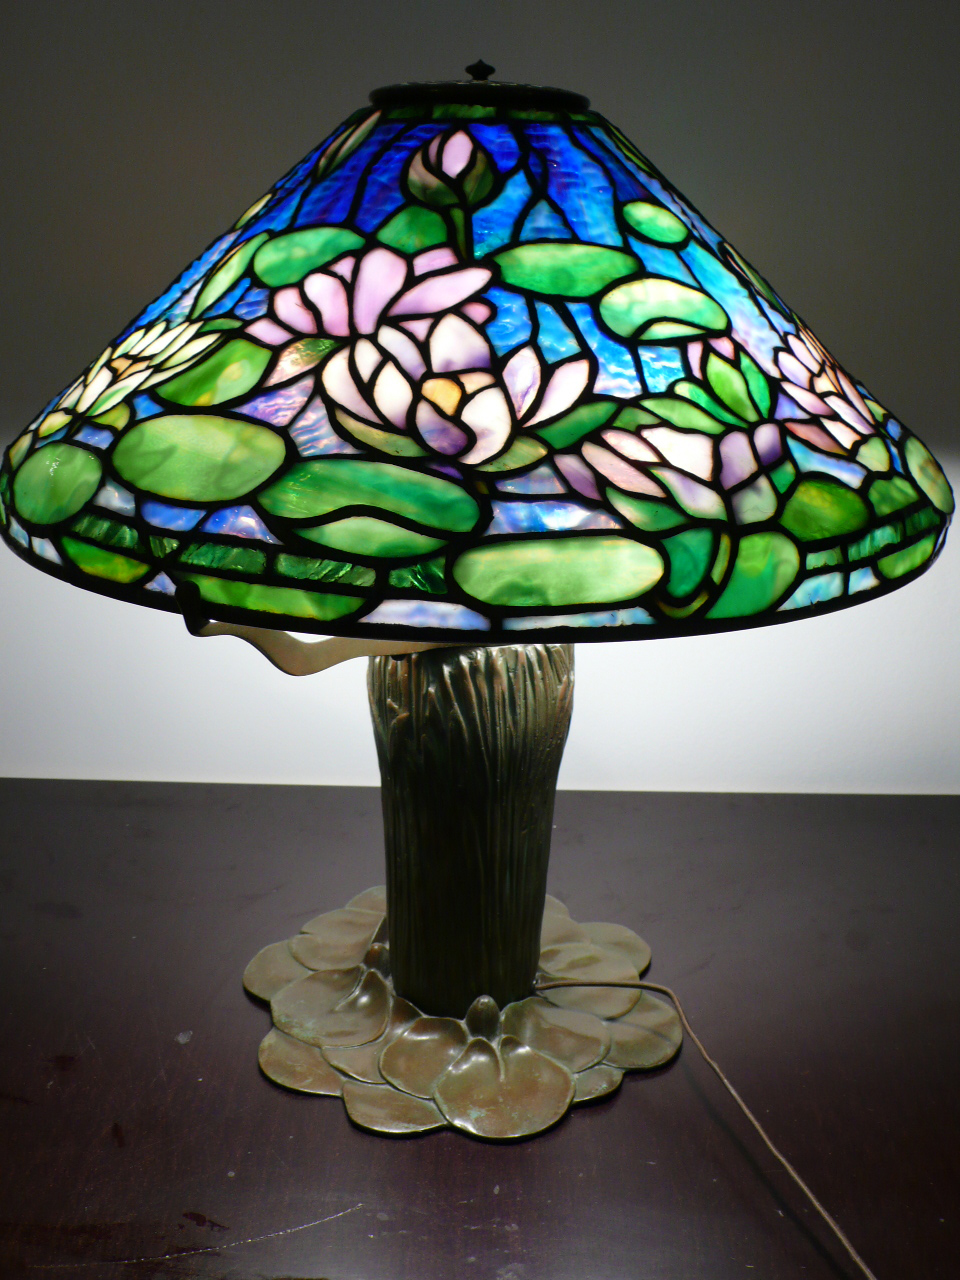 tiffany stained glass lamps 10 reasons to buy warisan lighting. Black Bedroom Furniture Sets. Home Design Ideas